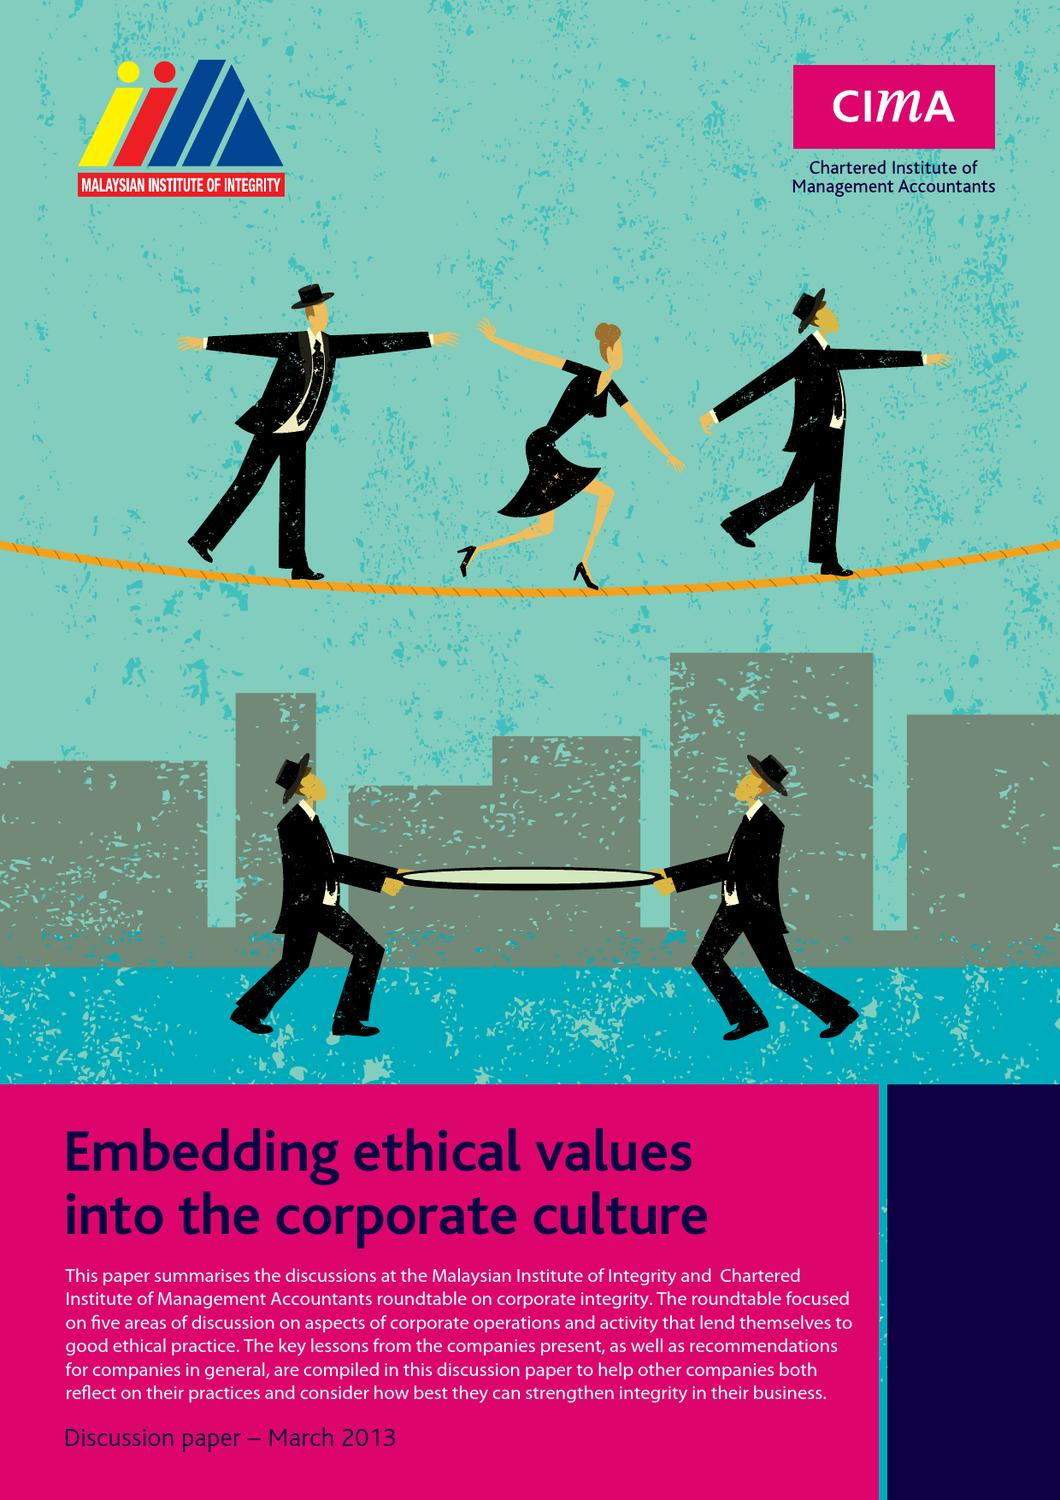 Embedding ethical values into the corporate culture Image